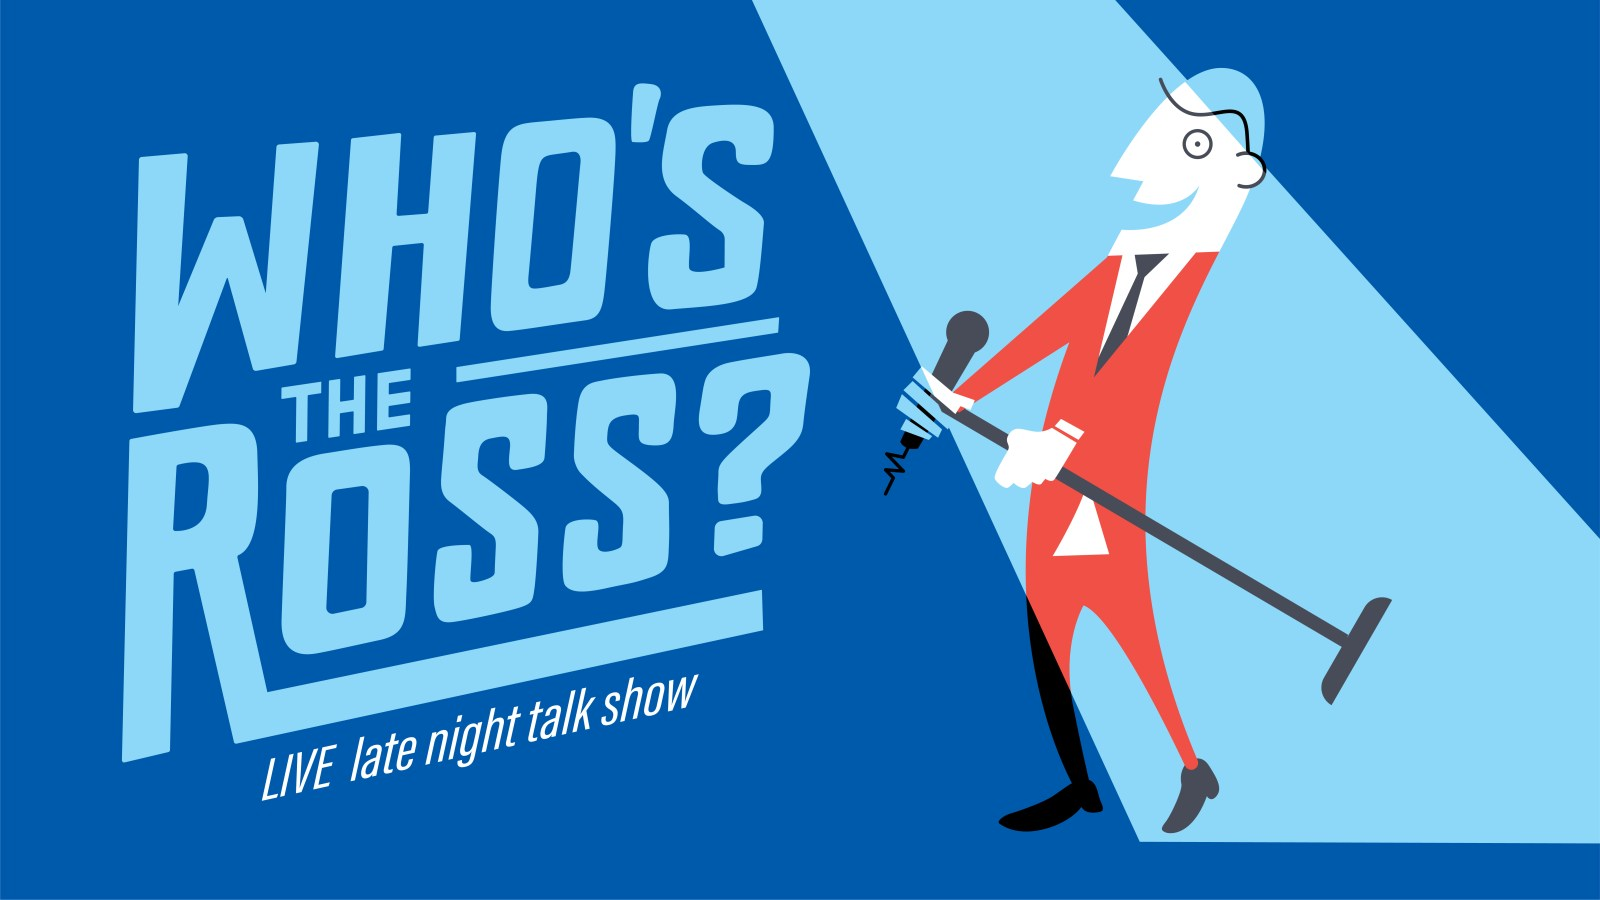 Who's the Ross? Aaron Ross comedian late-night talk show live funny silverlake El cid Los Angeles LA Hollywood